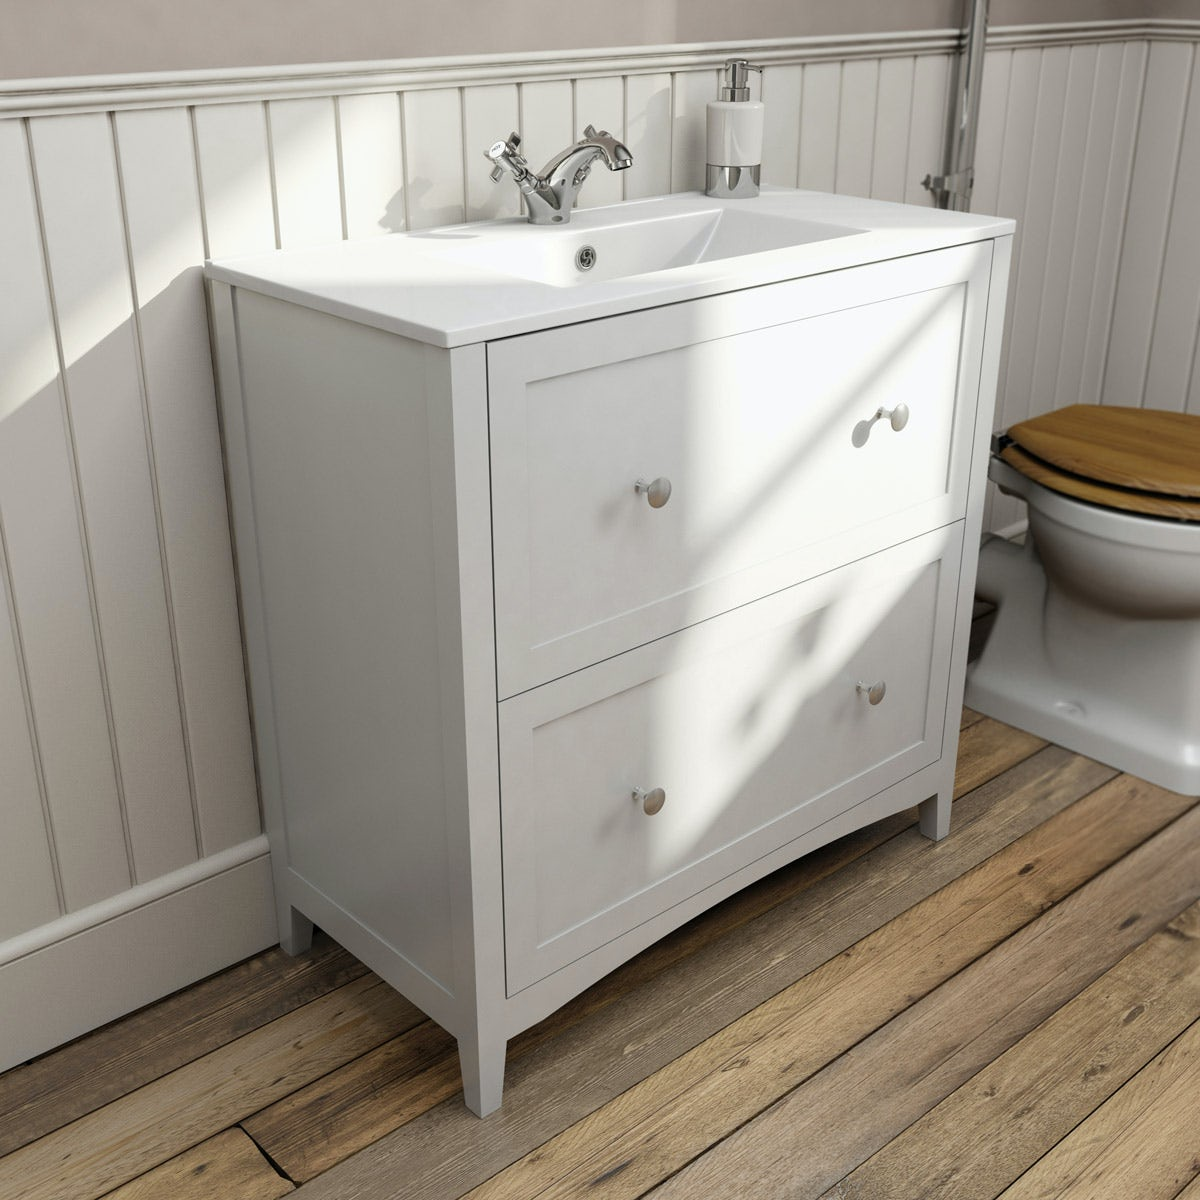 Camberley White 800 Floor Drawer Unit & Basin